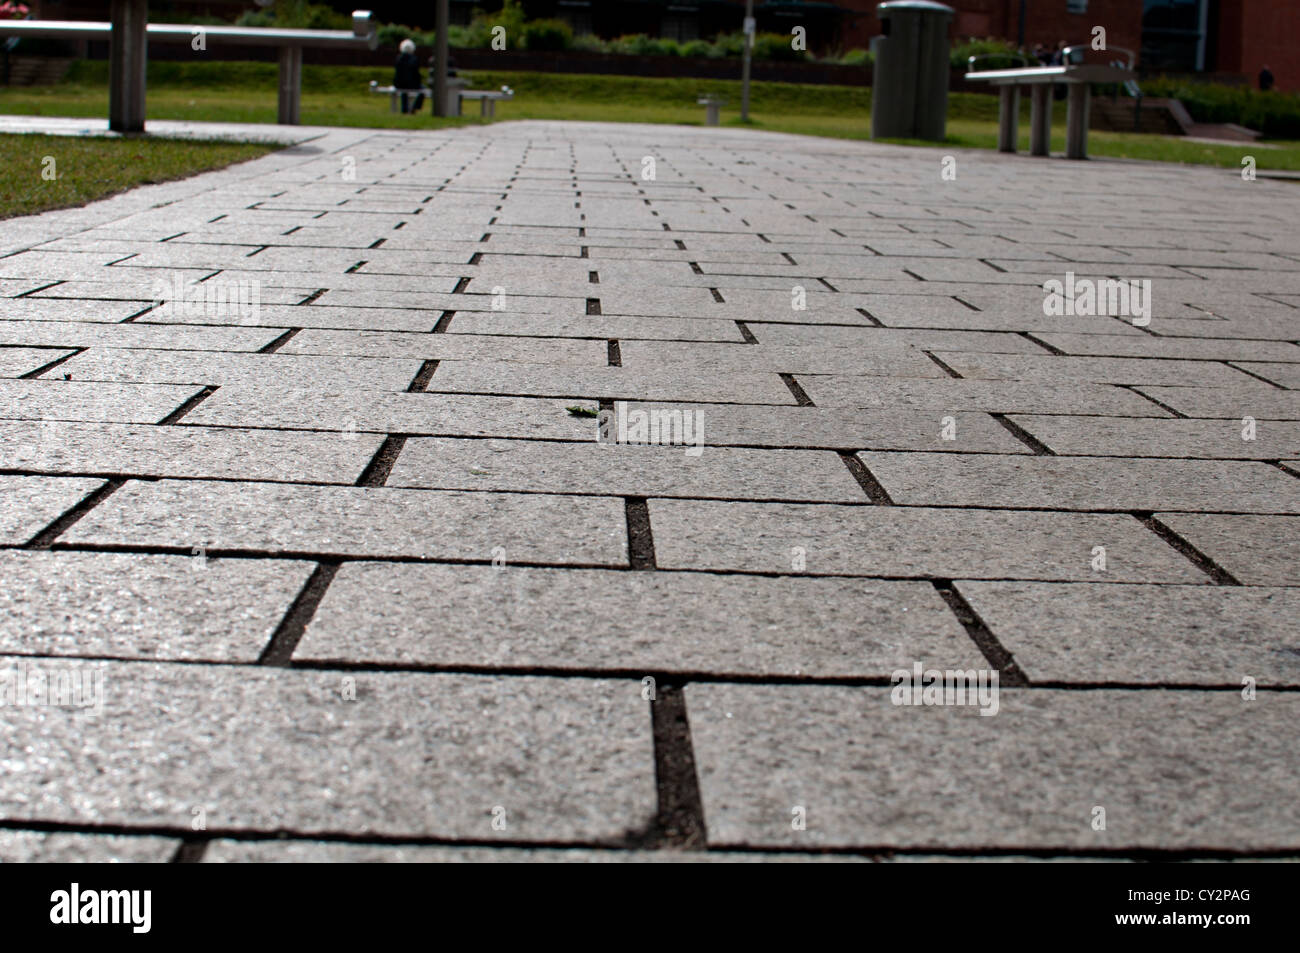 Block paving, low angle view - Stock Image